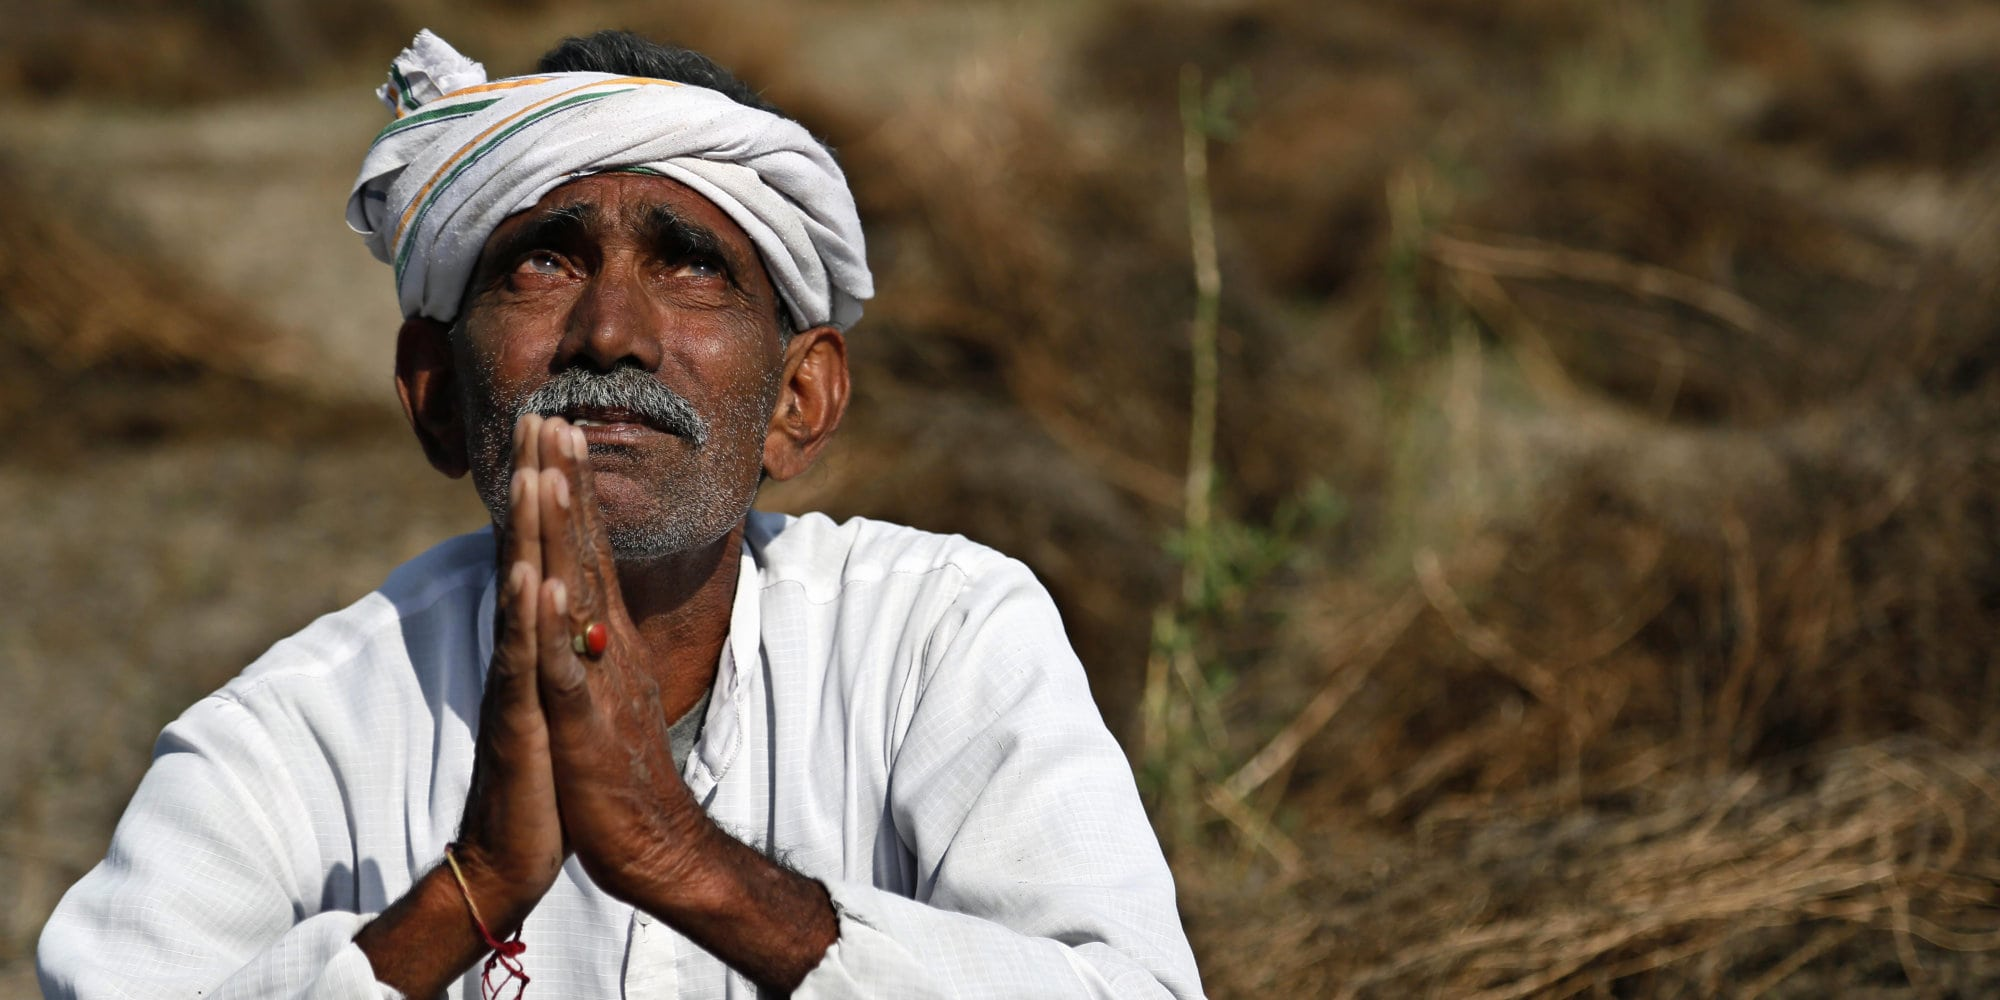 problems of farmers in india The biggest problem of farmers is the low price for their farm produce a recent study showed that proper pricing based on energy of production and equating farming wages to industrial wages may be beneficial for the farmers.